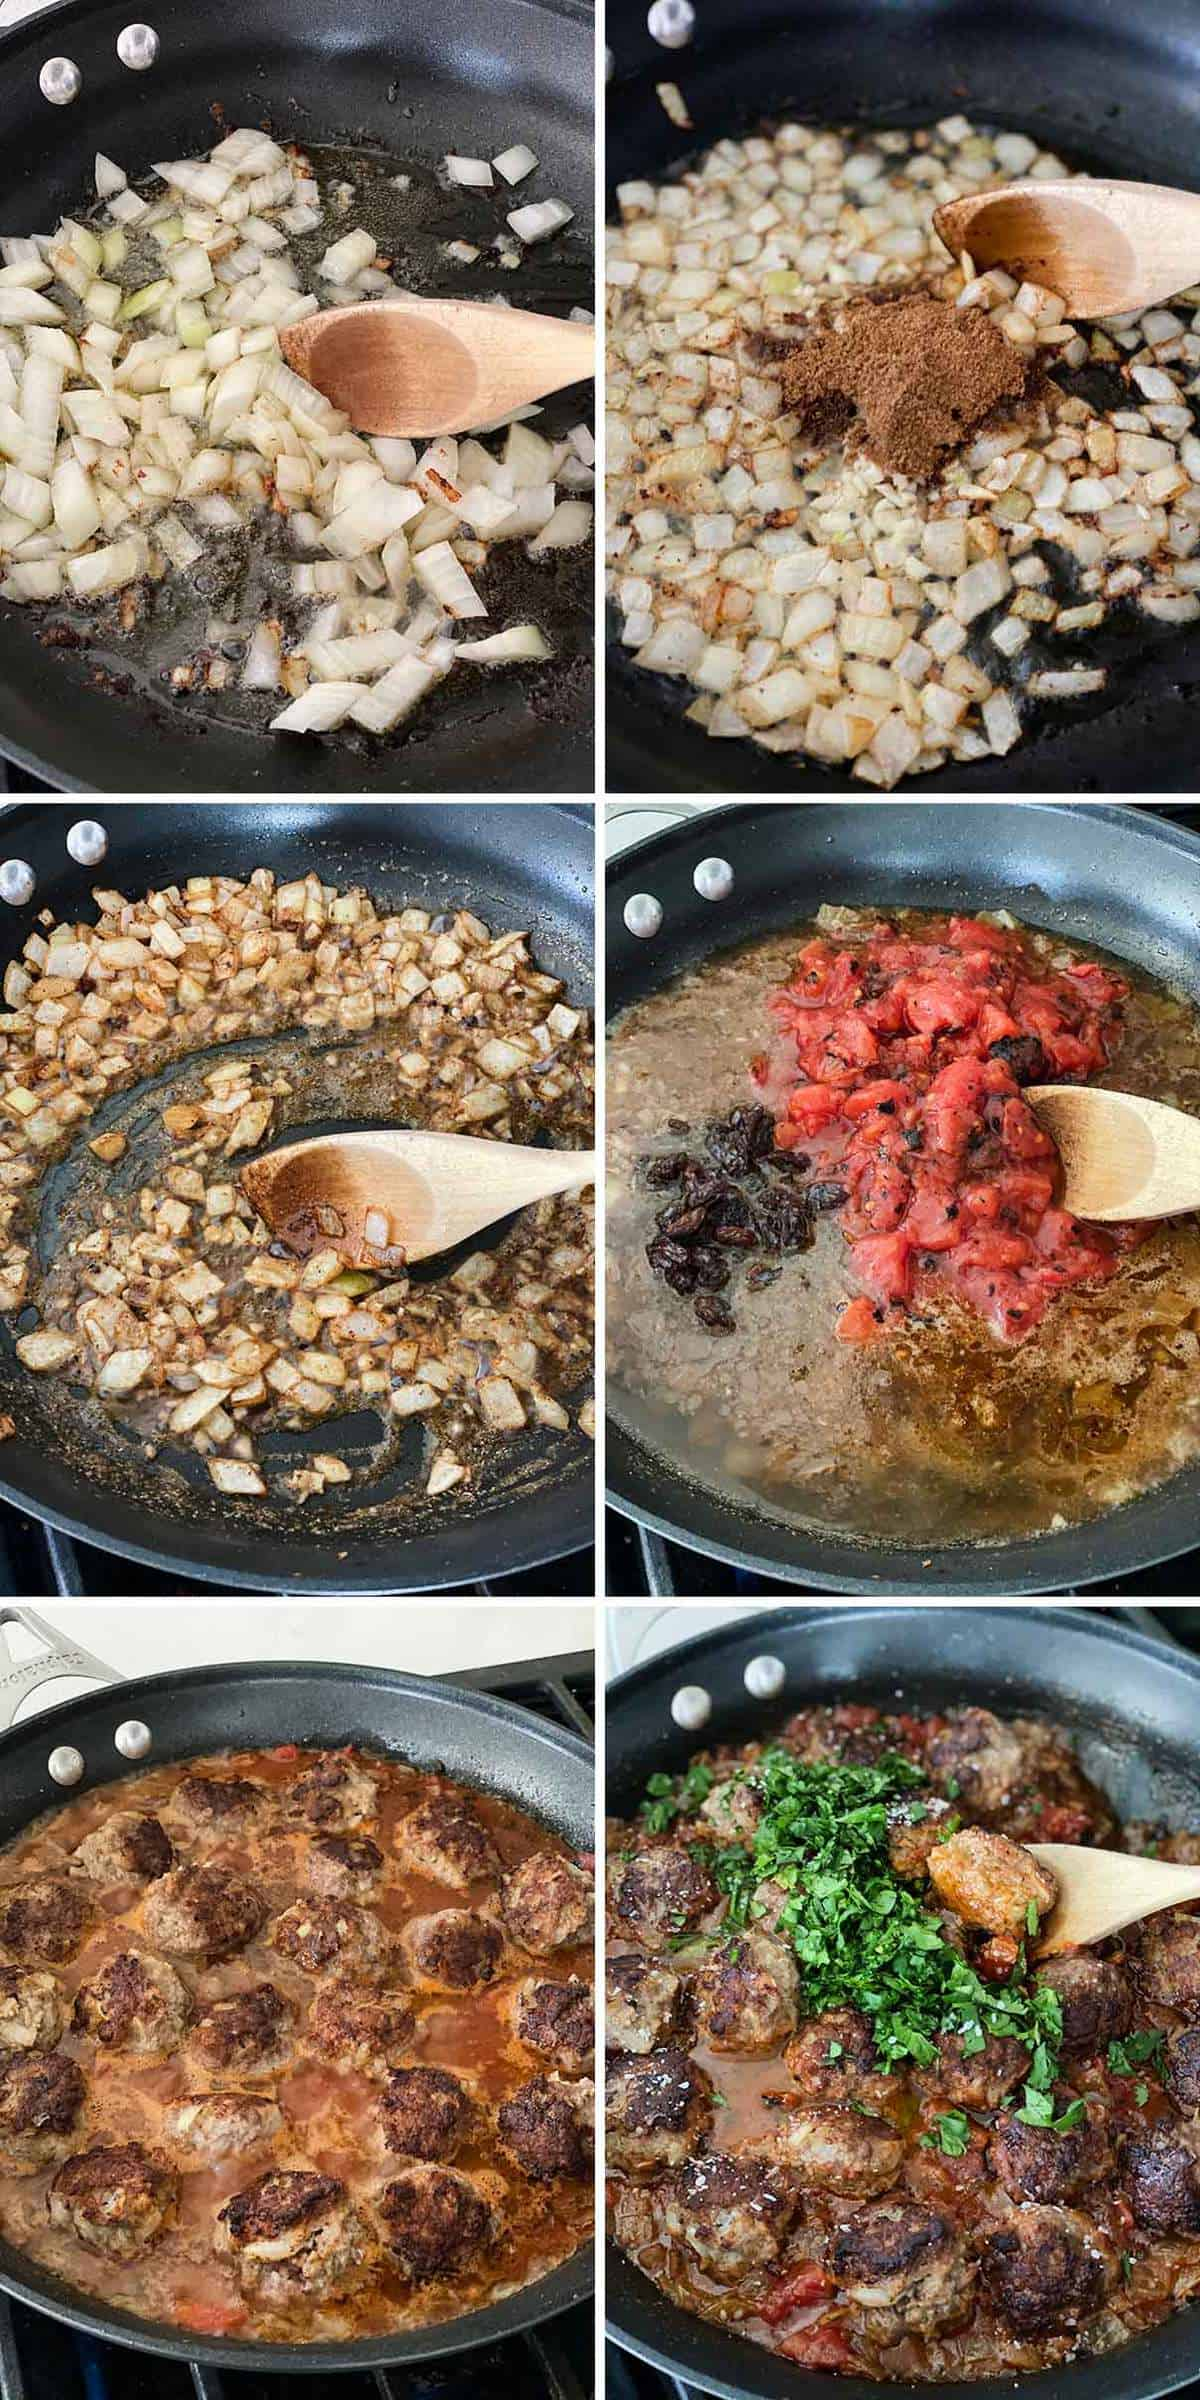 Process collage showing how to make Moroccan lamb meatballs in a tomato onion raisin sauce.